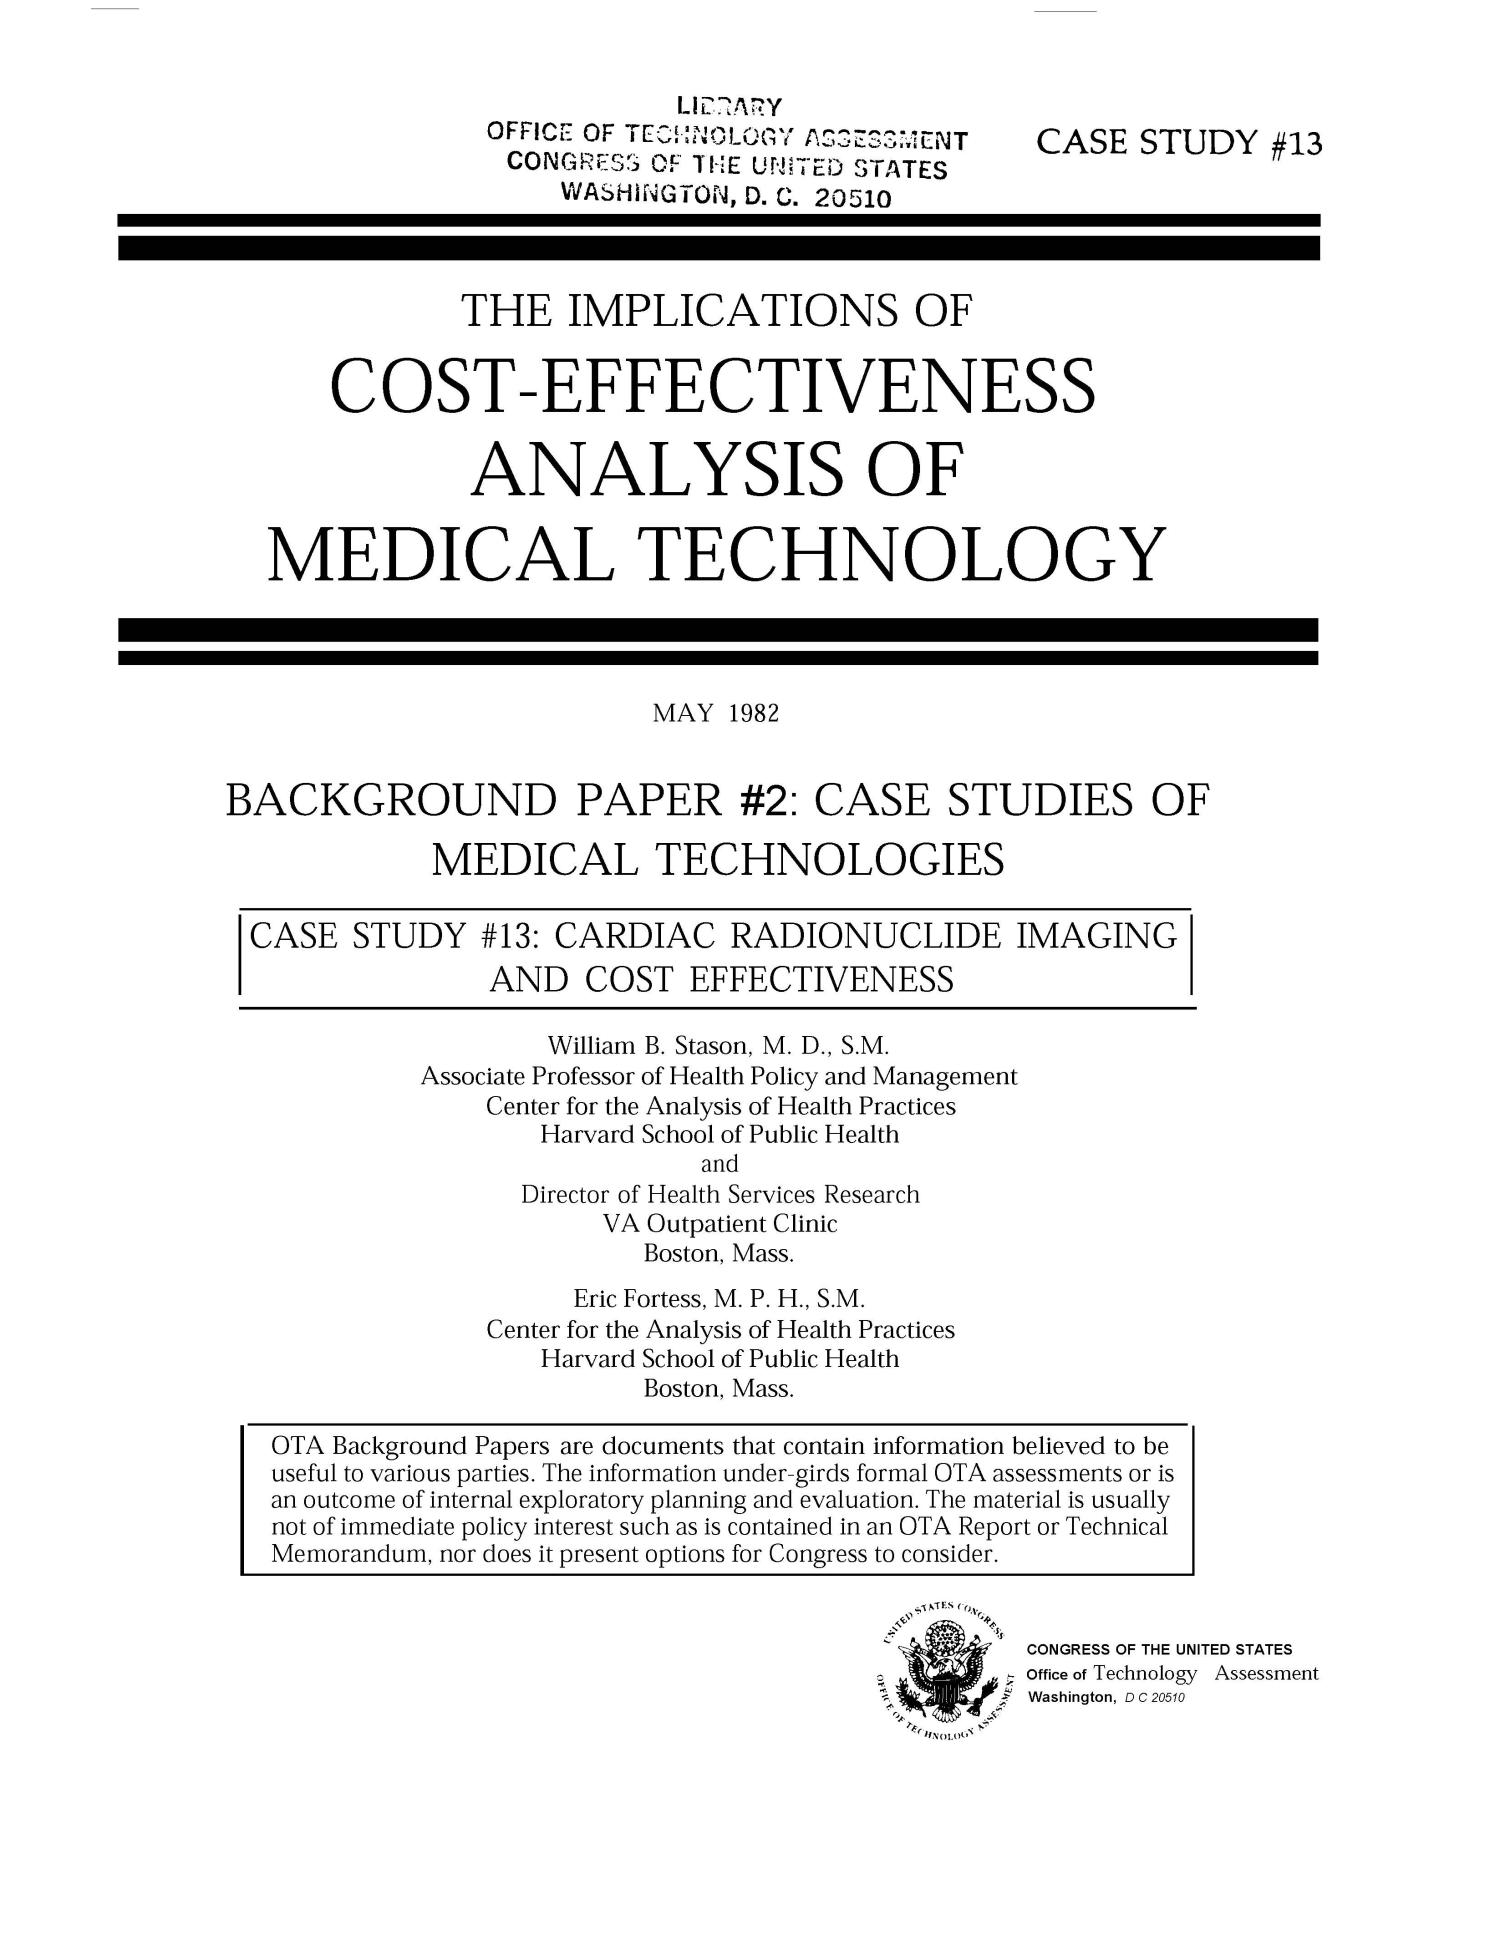 The Implications of Cost-Effectiveness Analysis of Medical Technology: Background Paper 2: Case Studies of Medical Technologies: Case Study 13: Cardiac Radionuclide Imaging and Cost Effectiveness                                                                                                      Title Page